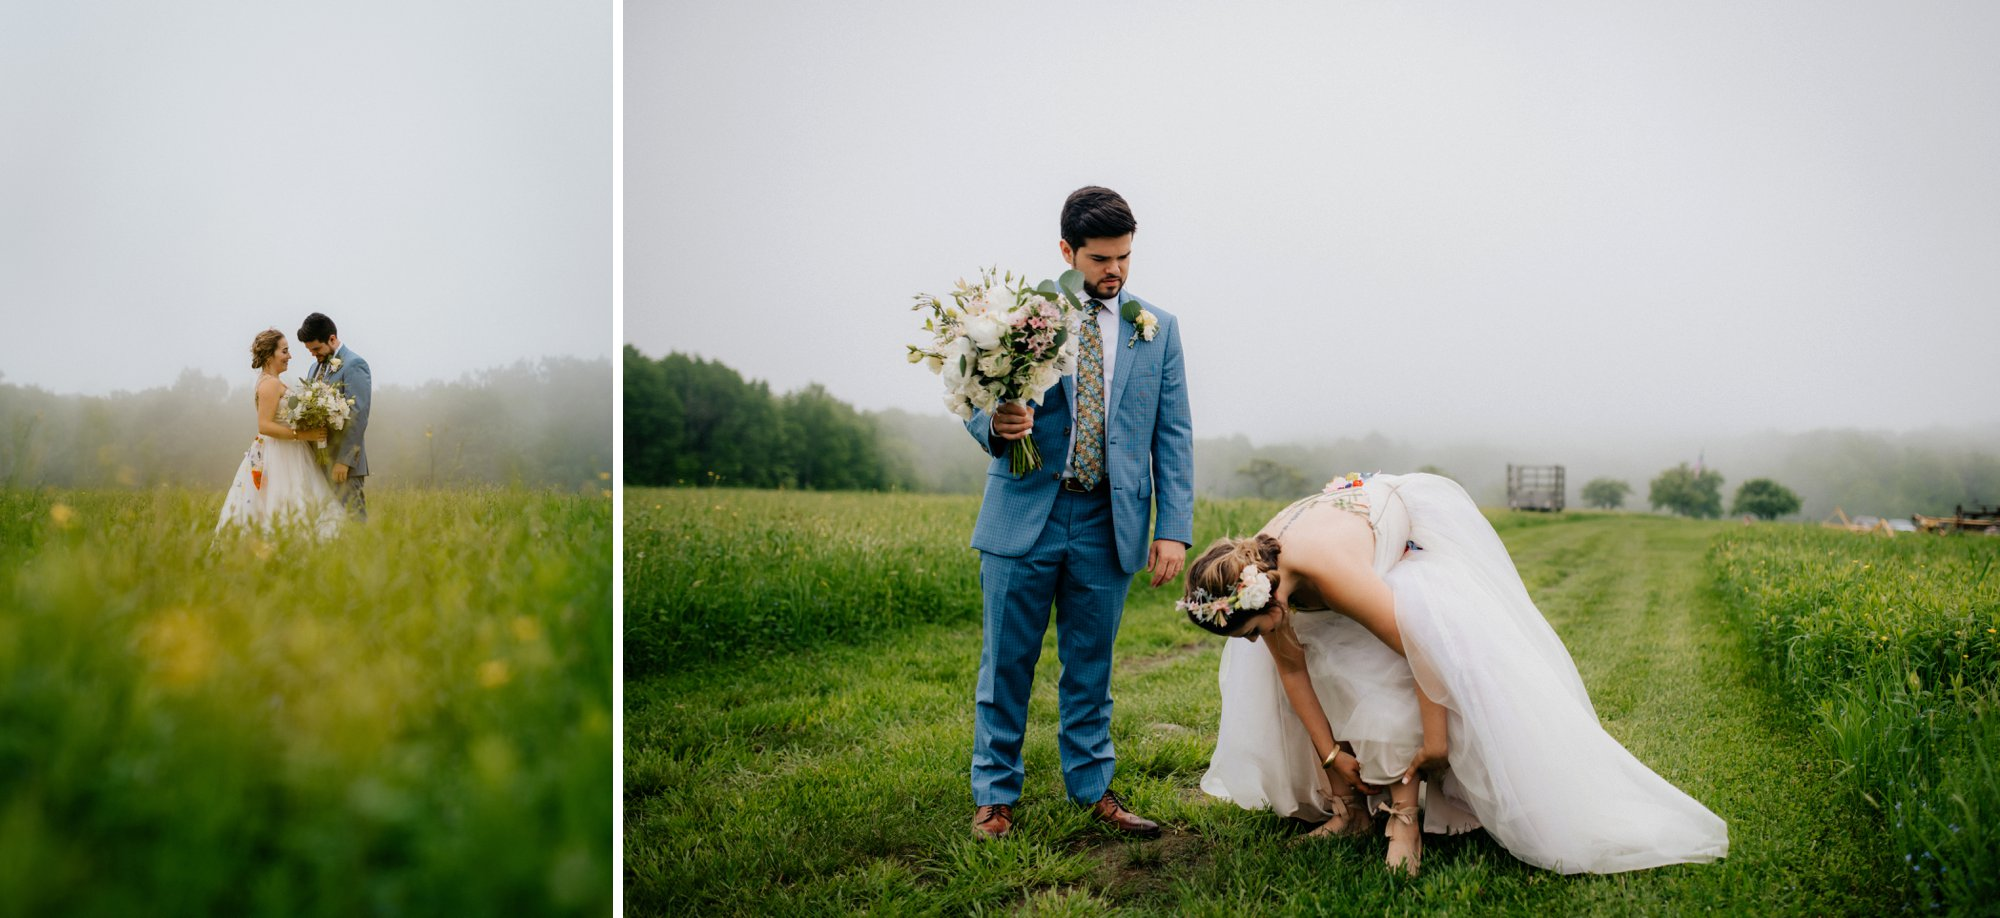 Fiddle Lake Farm Philadelphia Pennsylvania Misty Rustic Wedding with Lush Florals